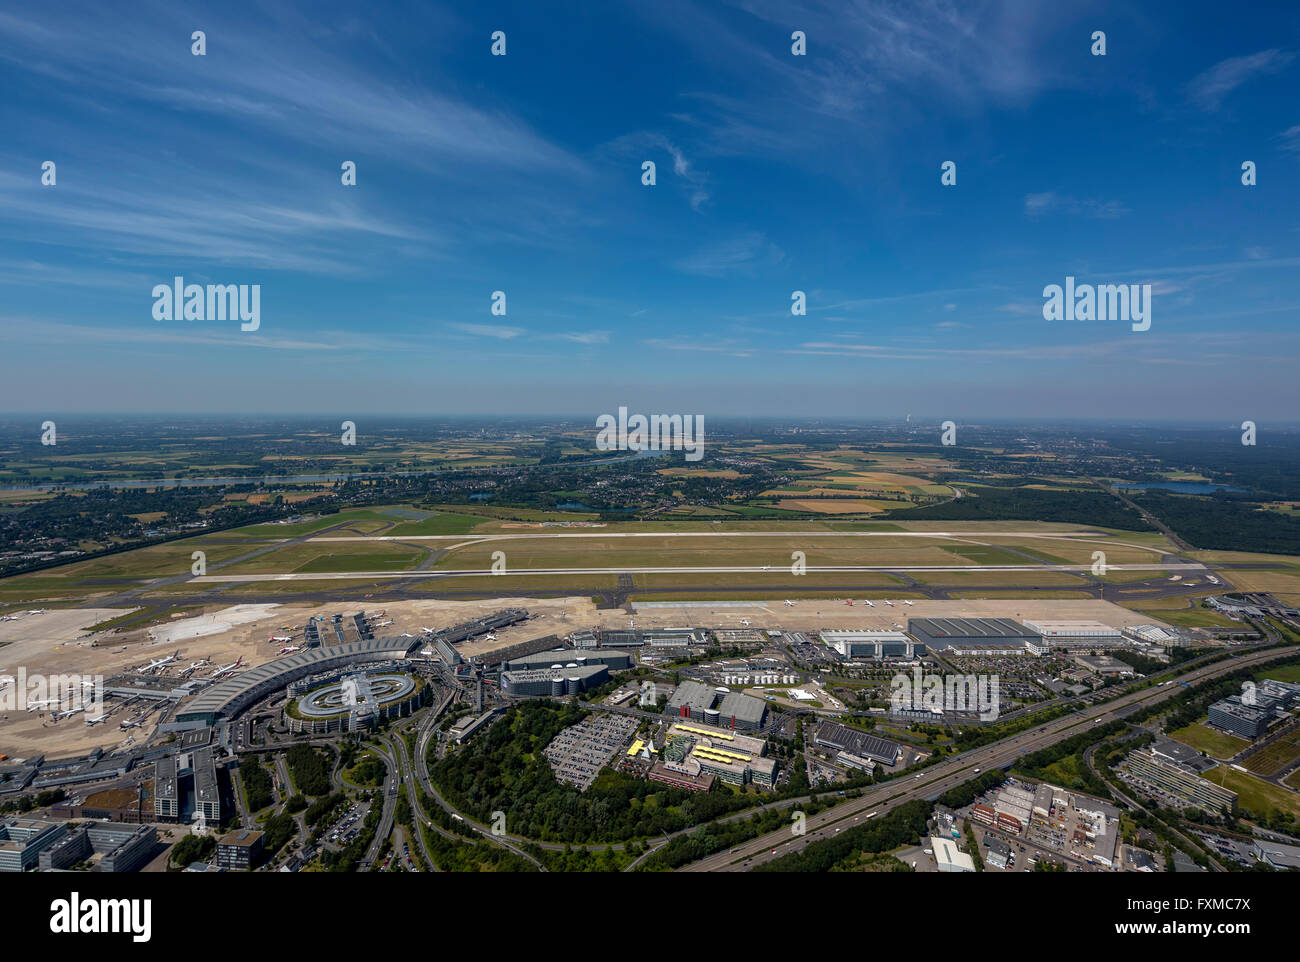 Aerial view, runways 23L 05R, freeway connection Düsseldorf International Airport, DUS, Dusseldorf Airport, - Stock Image